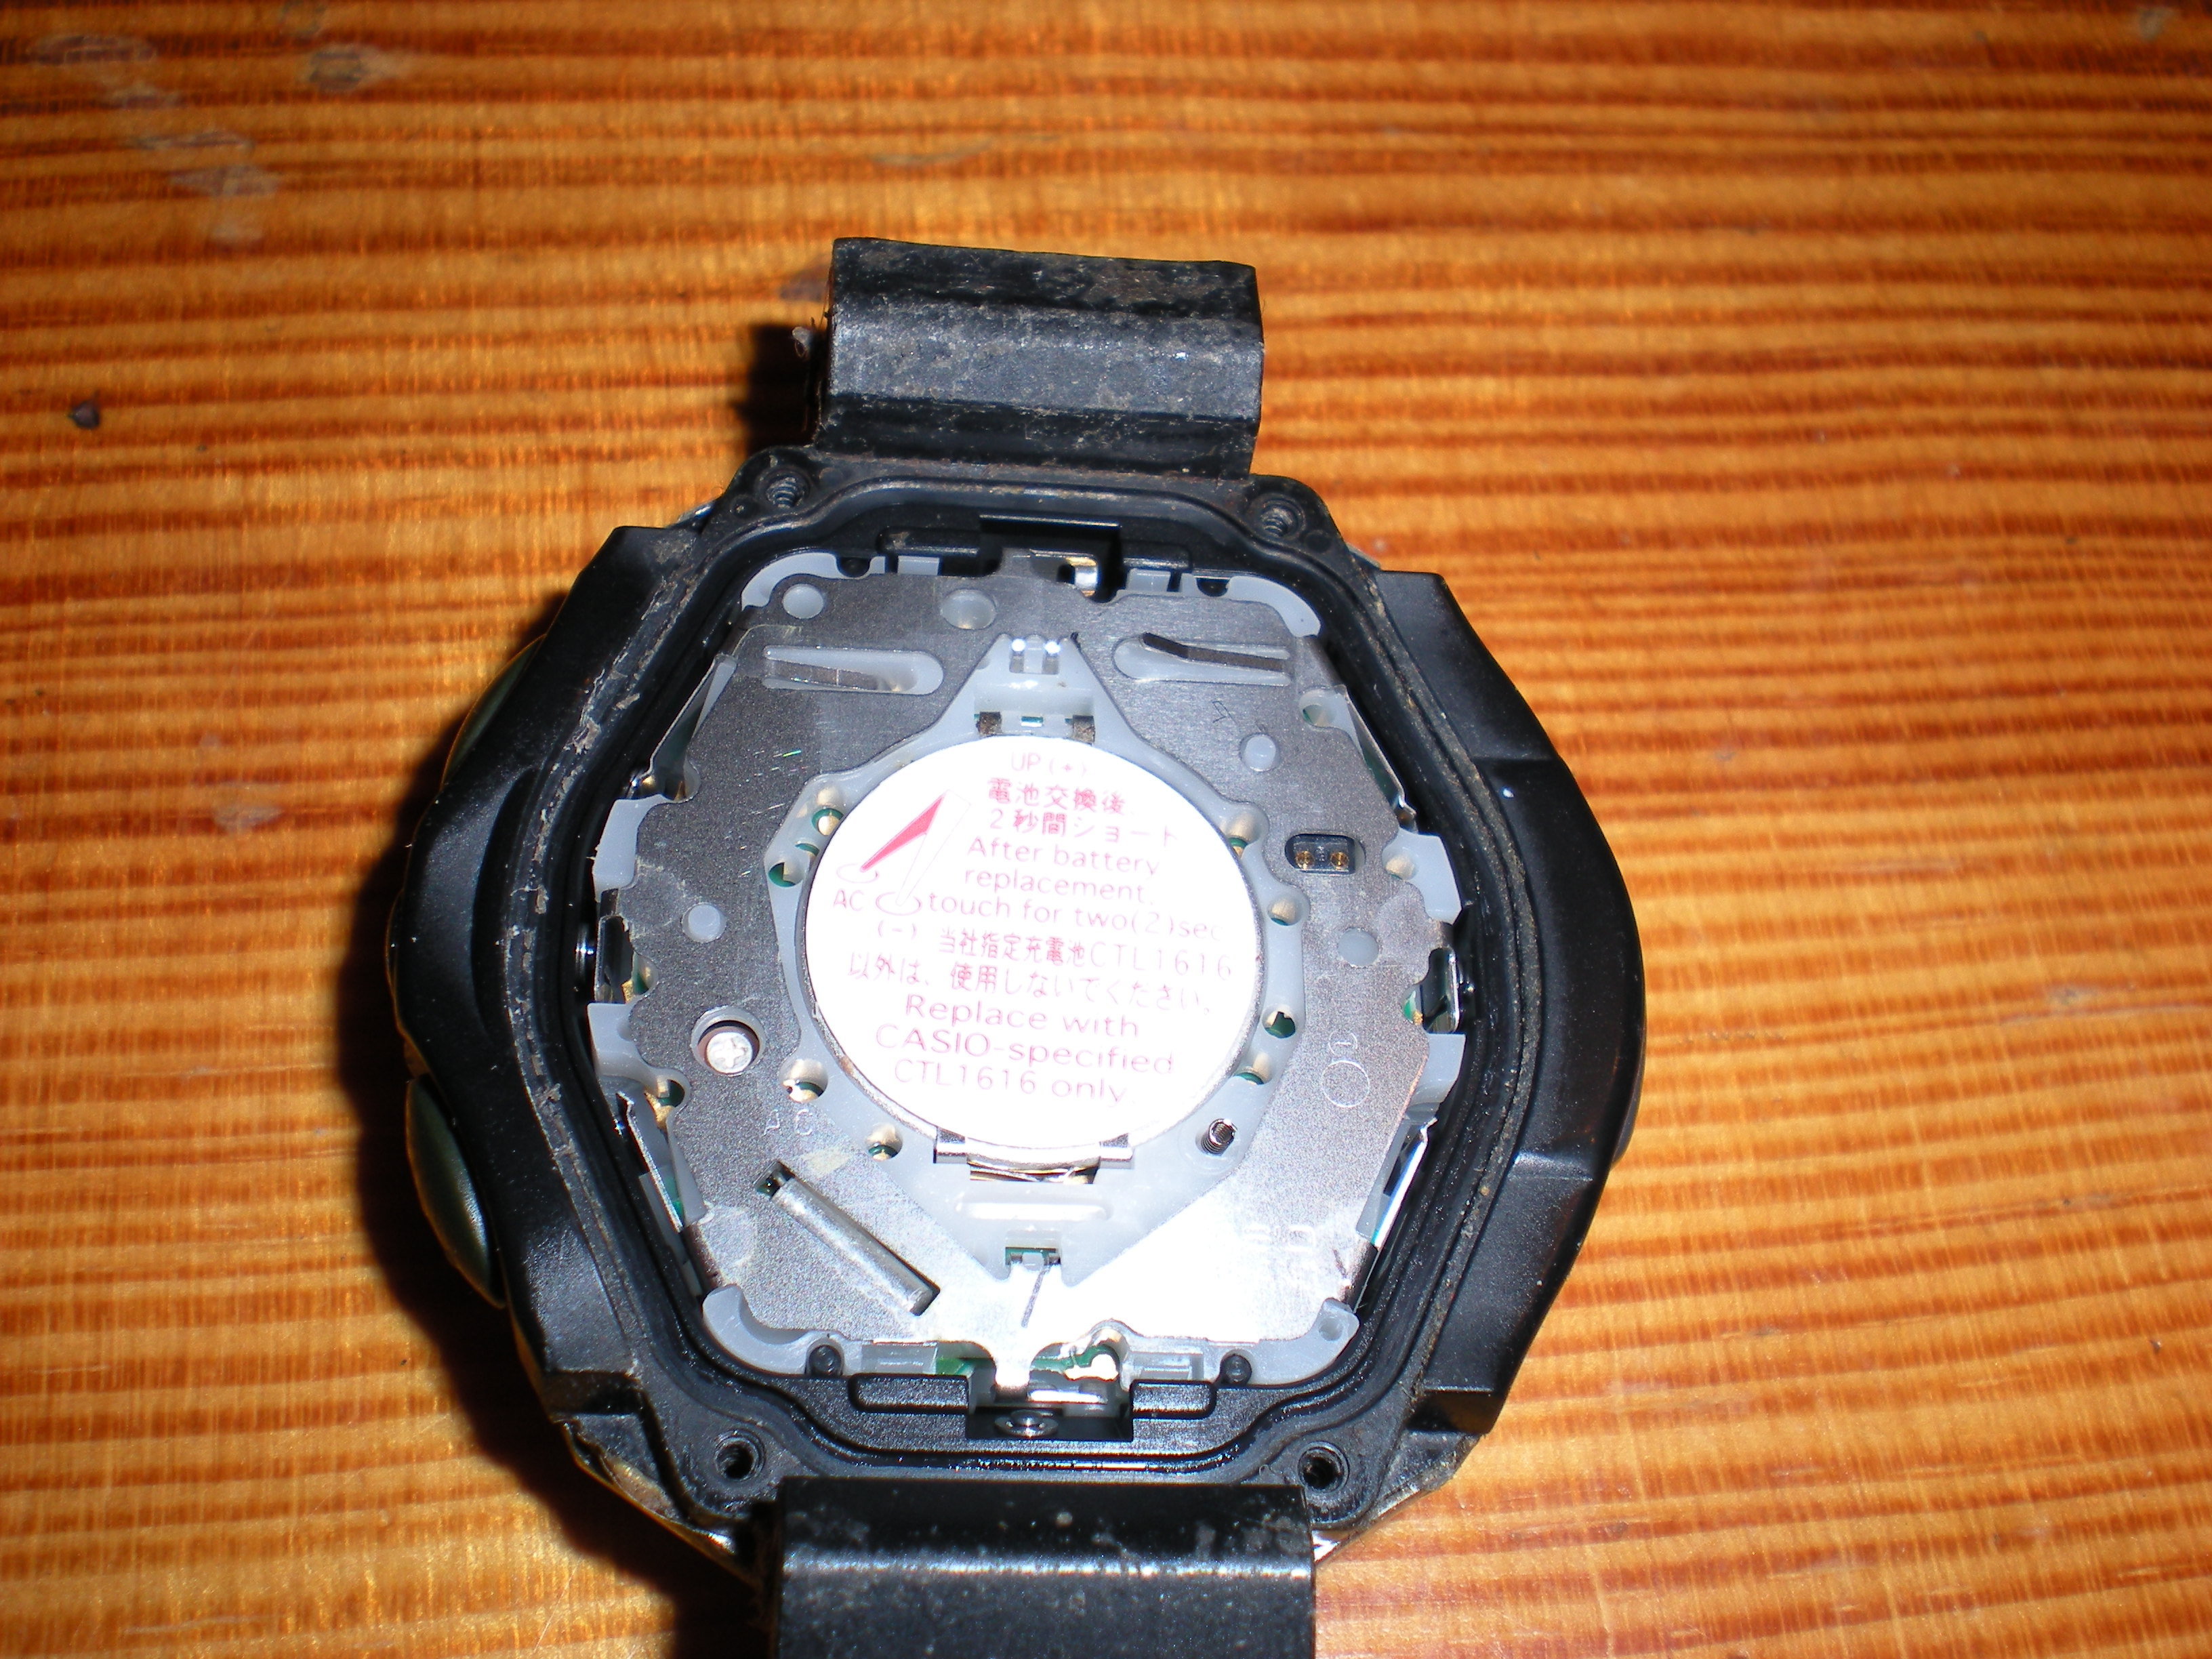 How To Change The Battery On A Casio Protrek Solar Powered Watch Prg 280 2 Original Gtousers Blog